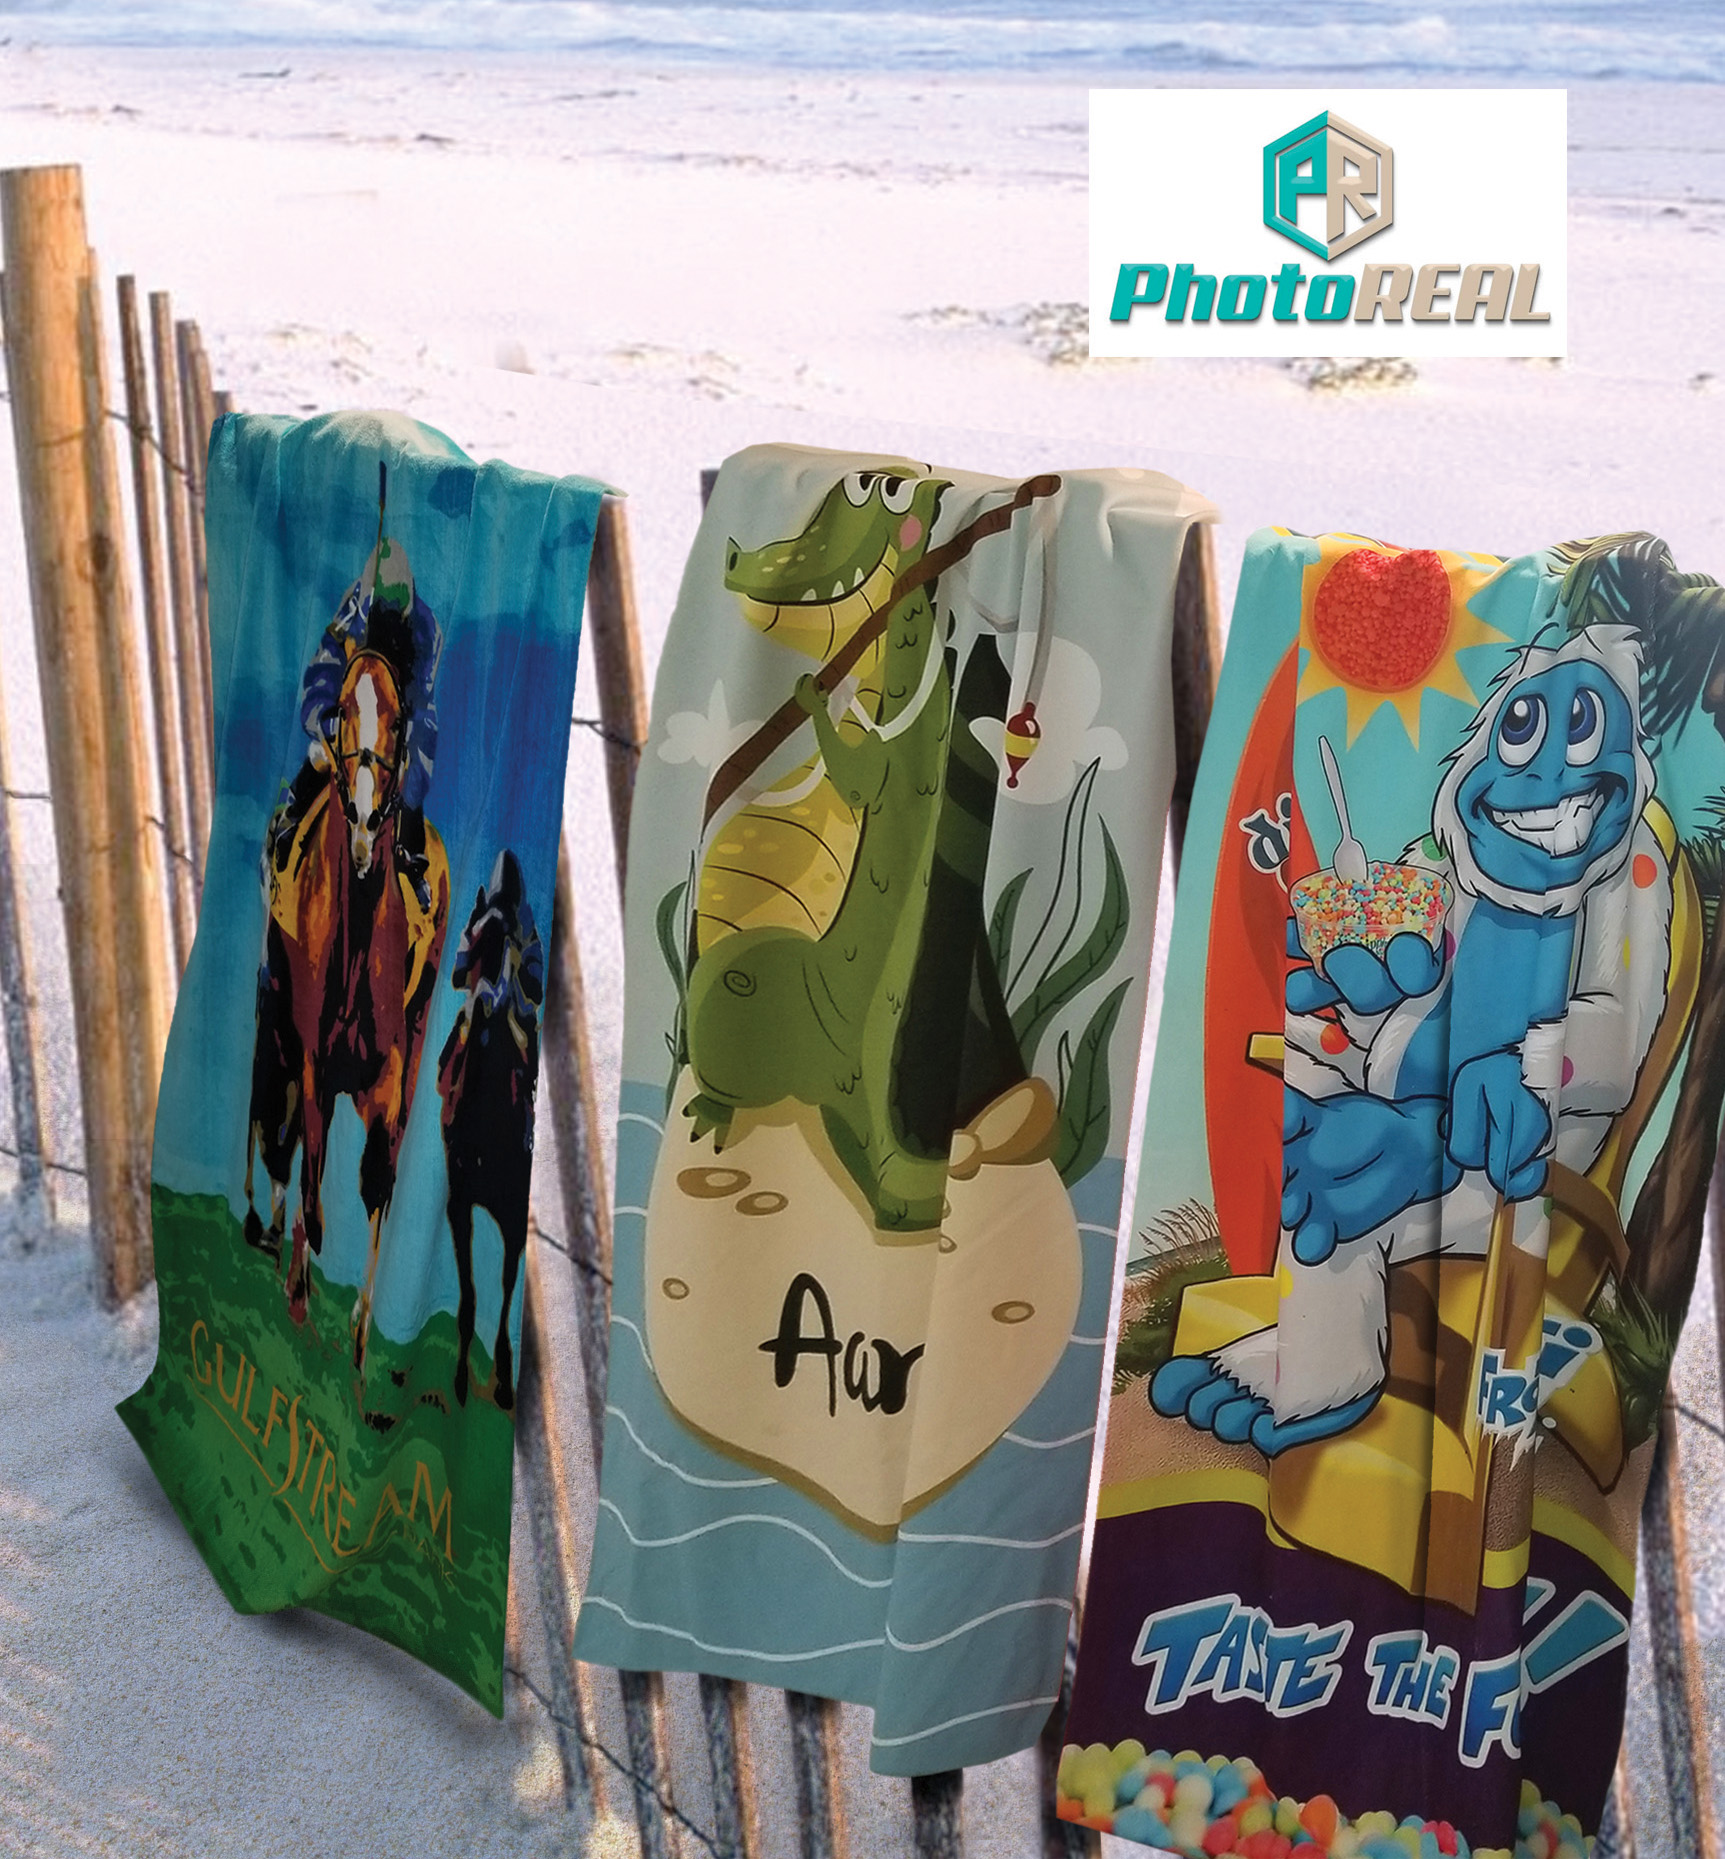 30x60 Full Color Cotton/Microfiber Edge to Edge Printed Beach Towels, 11.0 Lbs/ Dz. by Subli Mate™ using PHOTOreal™ technology.